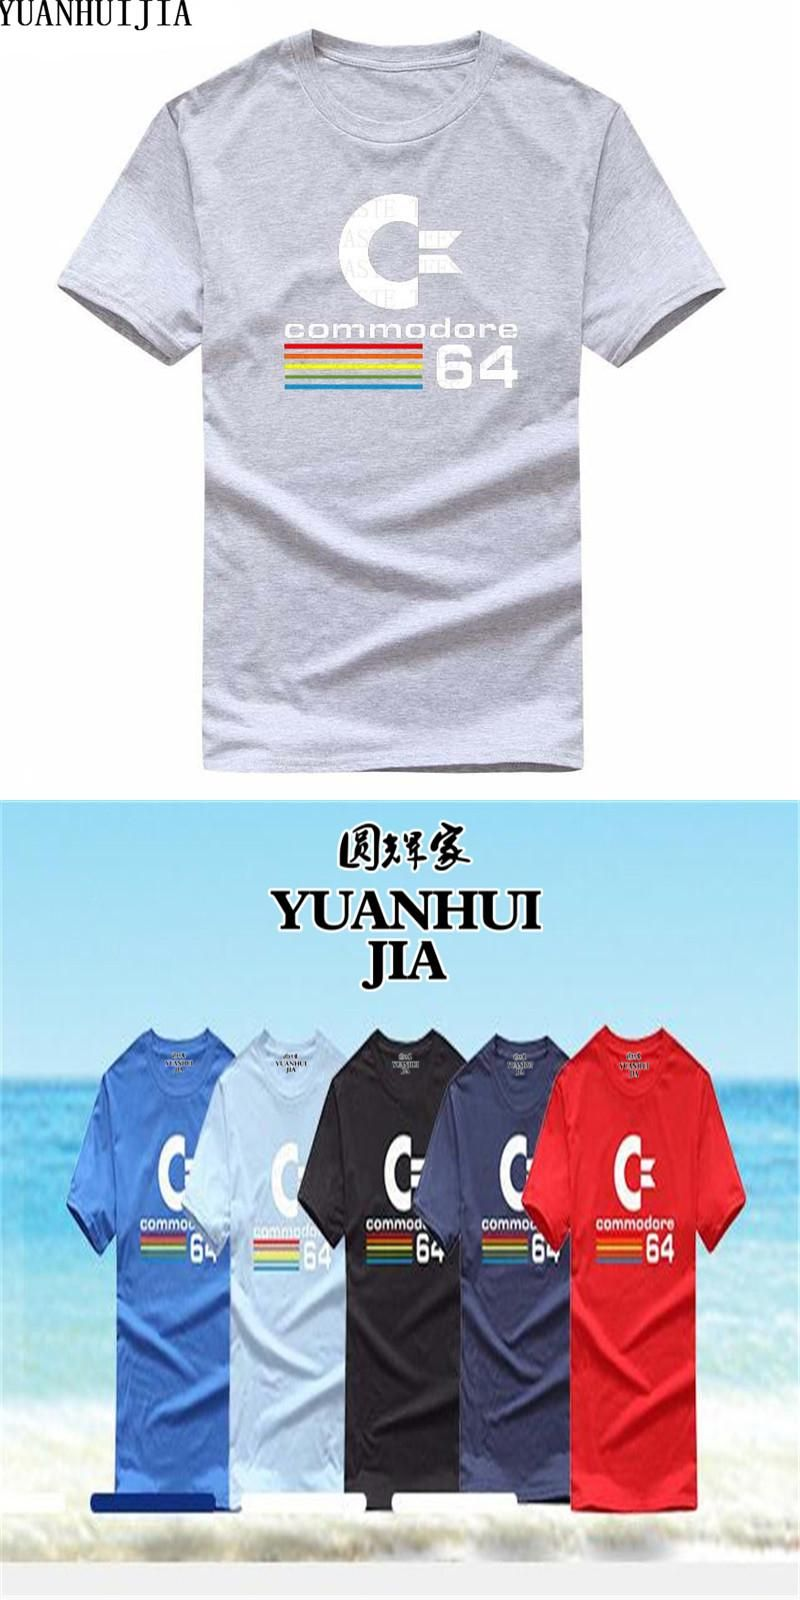 a63ebcd68 Short Sleeve Round Neck T Shirt Promotion Commodore 64 T Shirt For Men  Cotton Custom Printed Adult 100% Cotton Tee Shirt